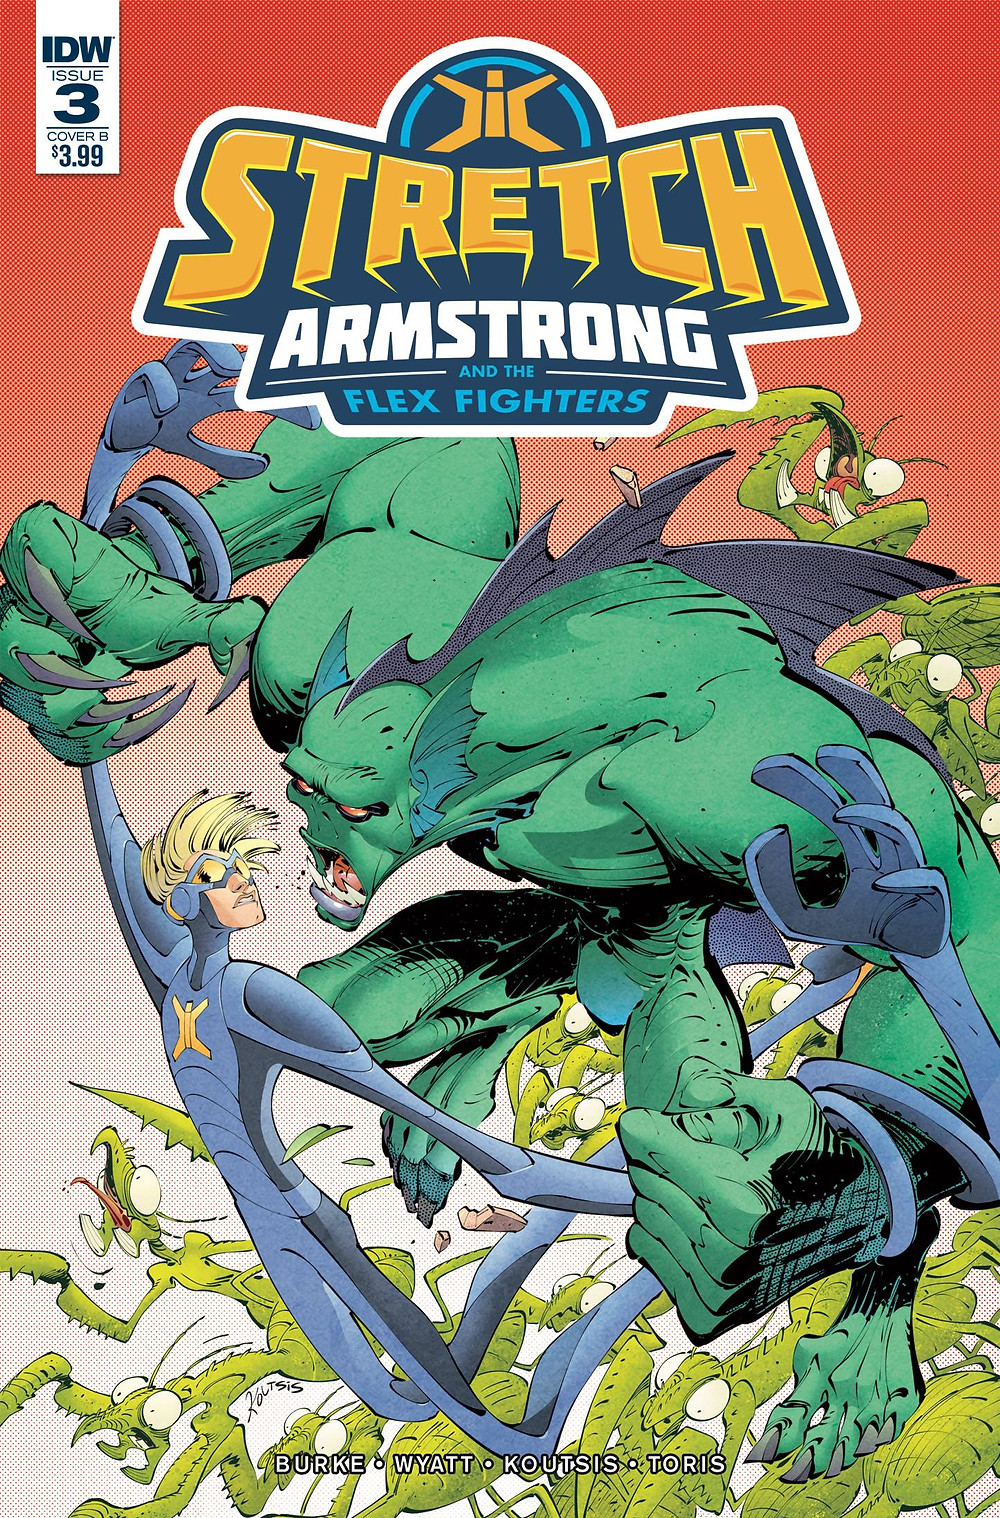 STRETCH ARMSTRONG #3 by IDW Publishing